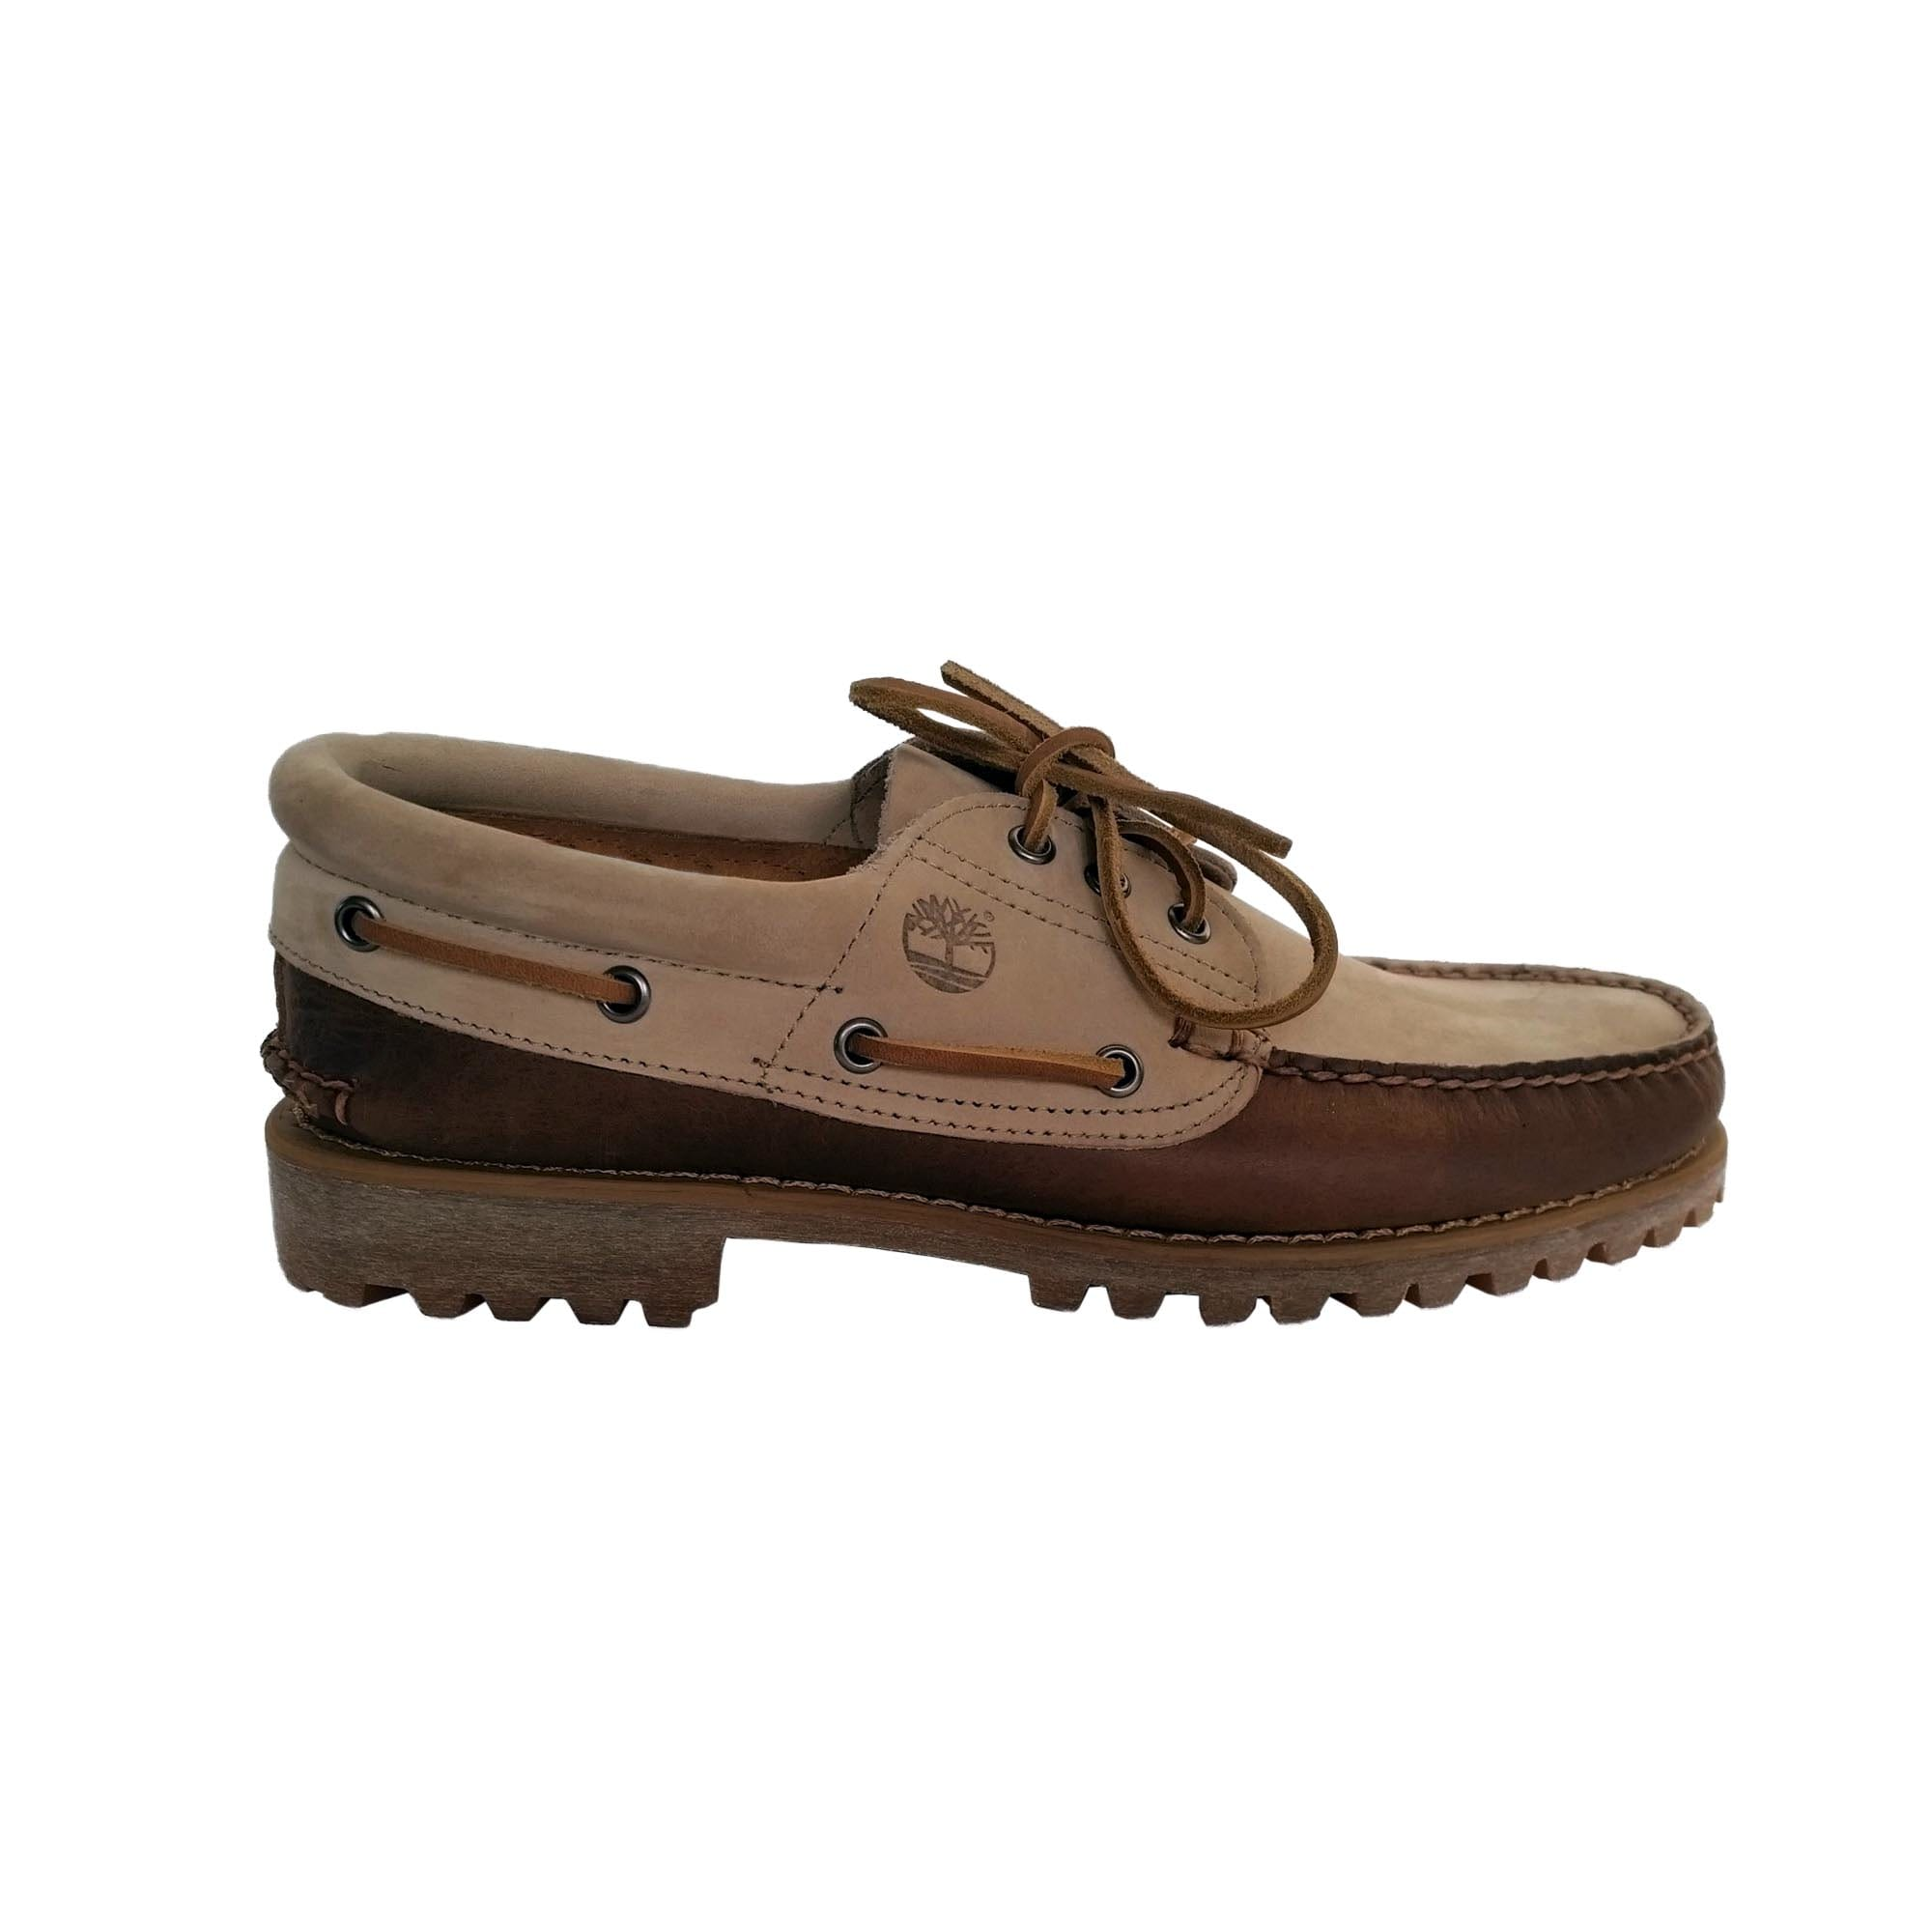 cba49c62b98 Chaussures à lacets TIMBERLAND Multicouleur